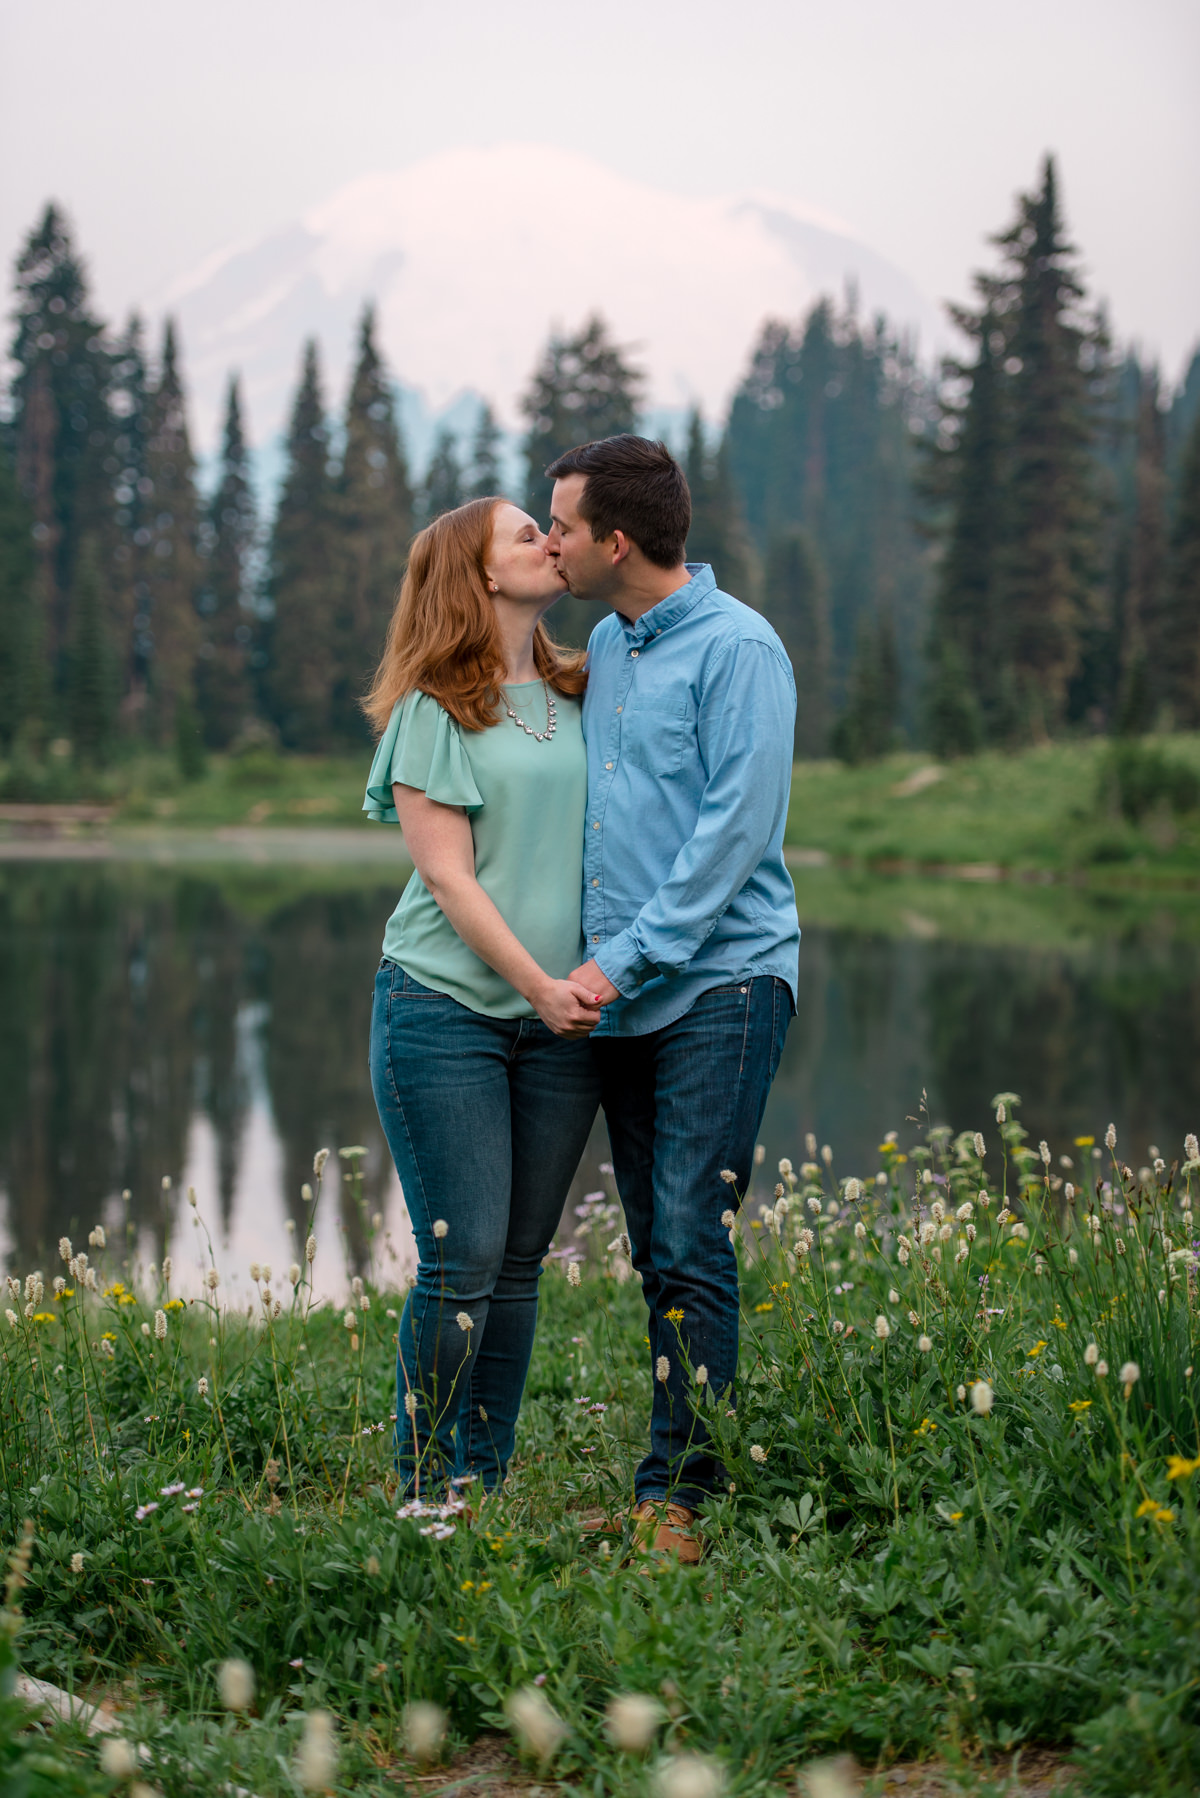 Andrew Tat - Documentary Wedding Photography - Tipsoo Lake - Mount Rainier National Park, Washington - Erin & Robert - 18.JPG